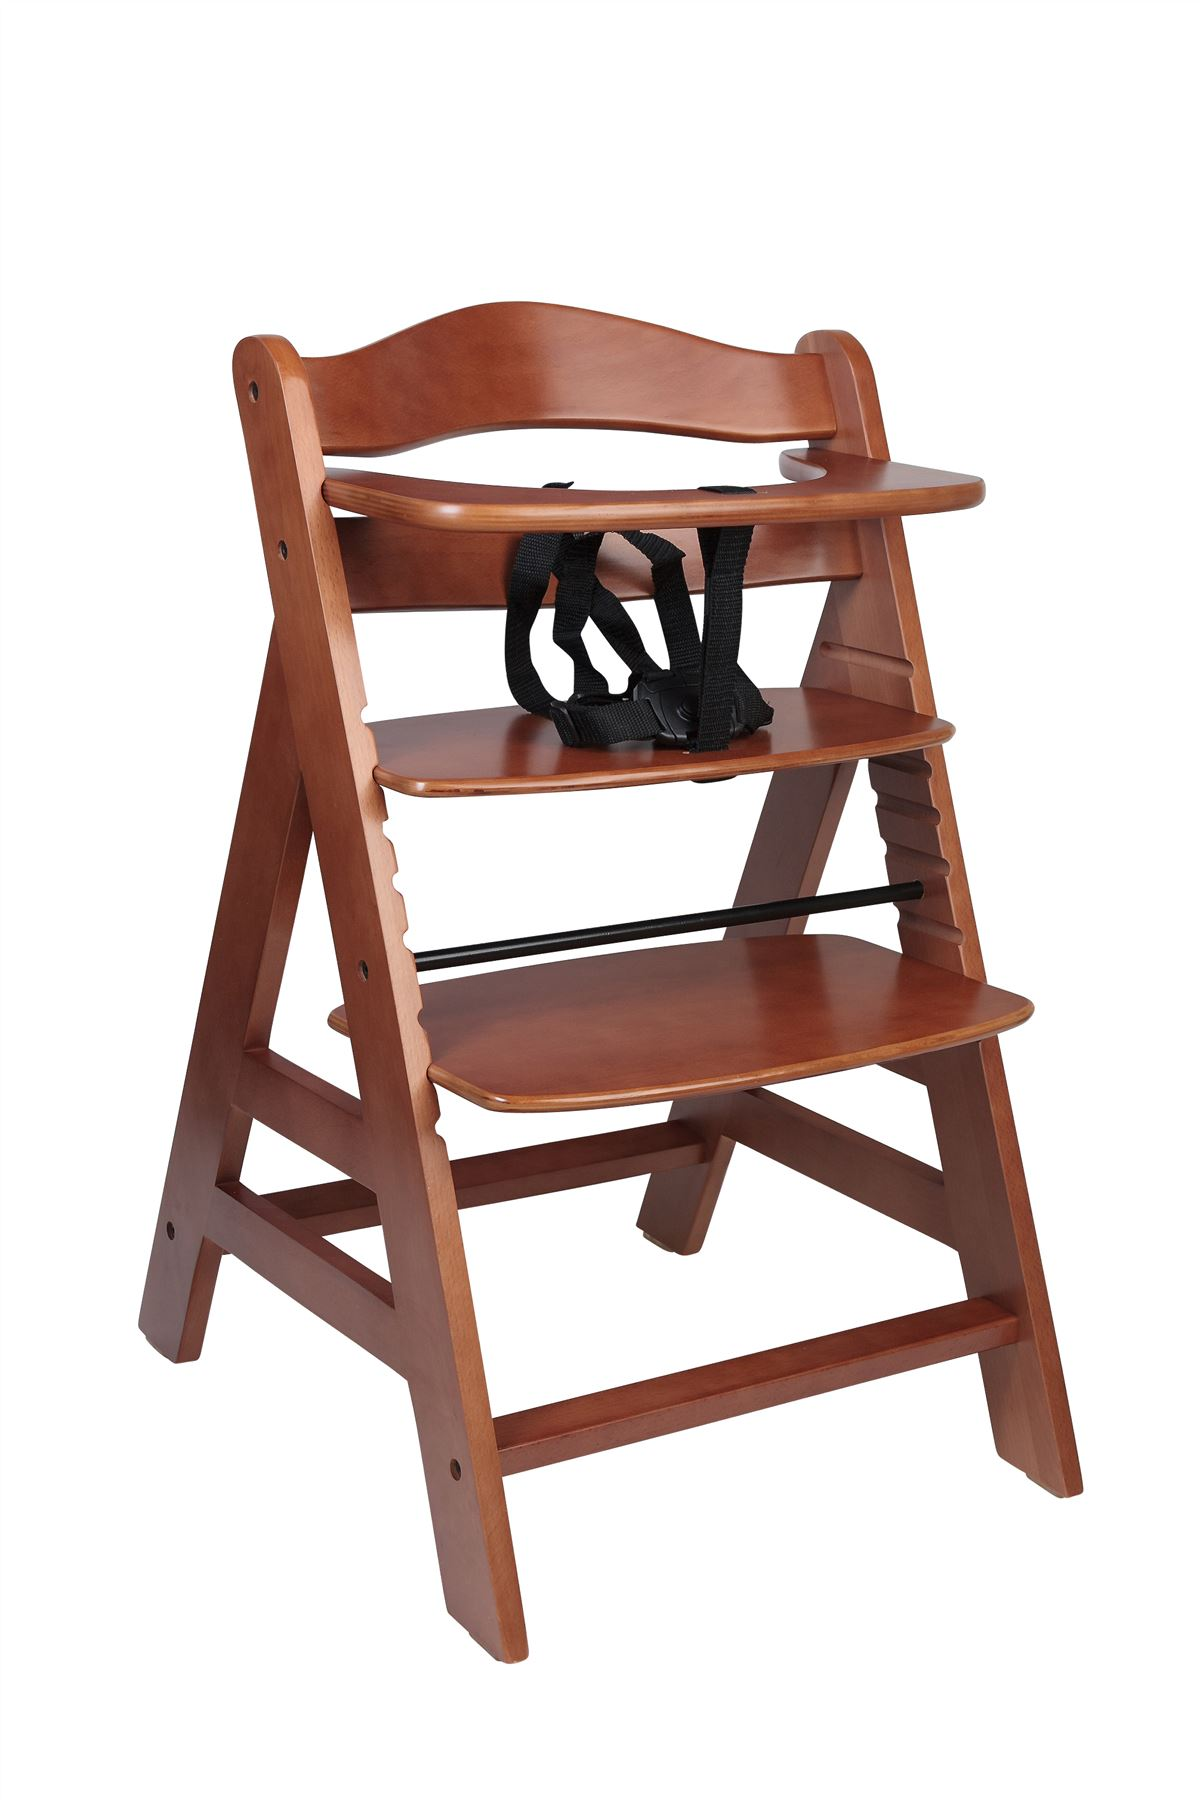 antilop high chair discount rocking chairs safetots a frame multi height premium wooden